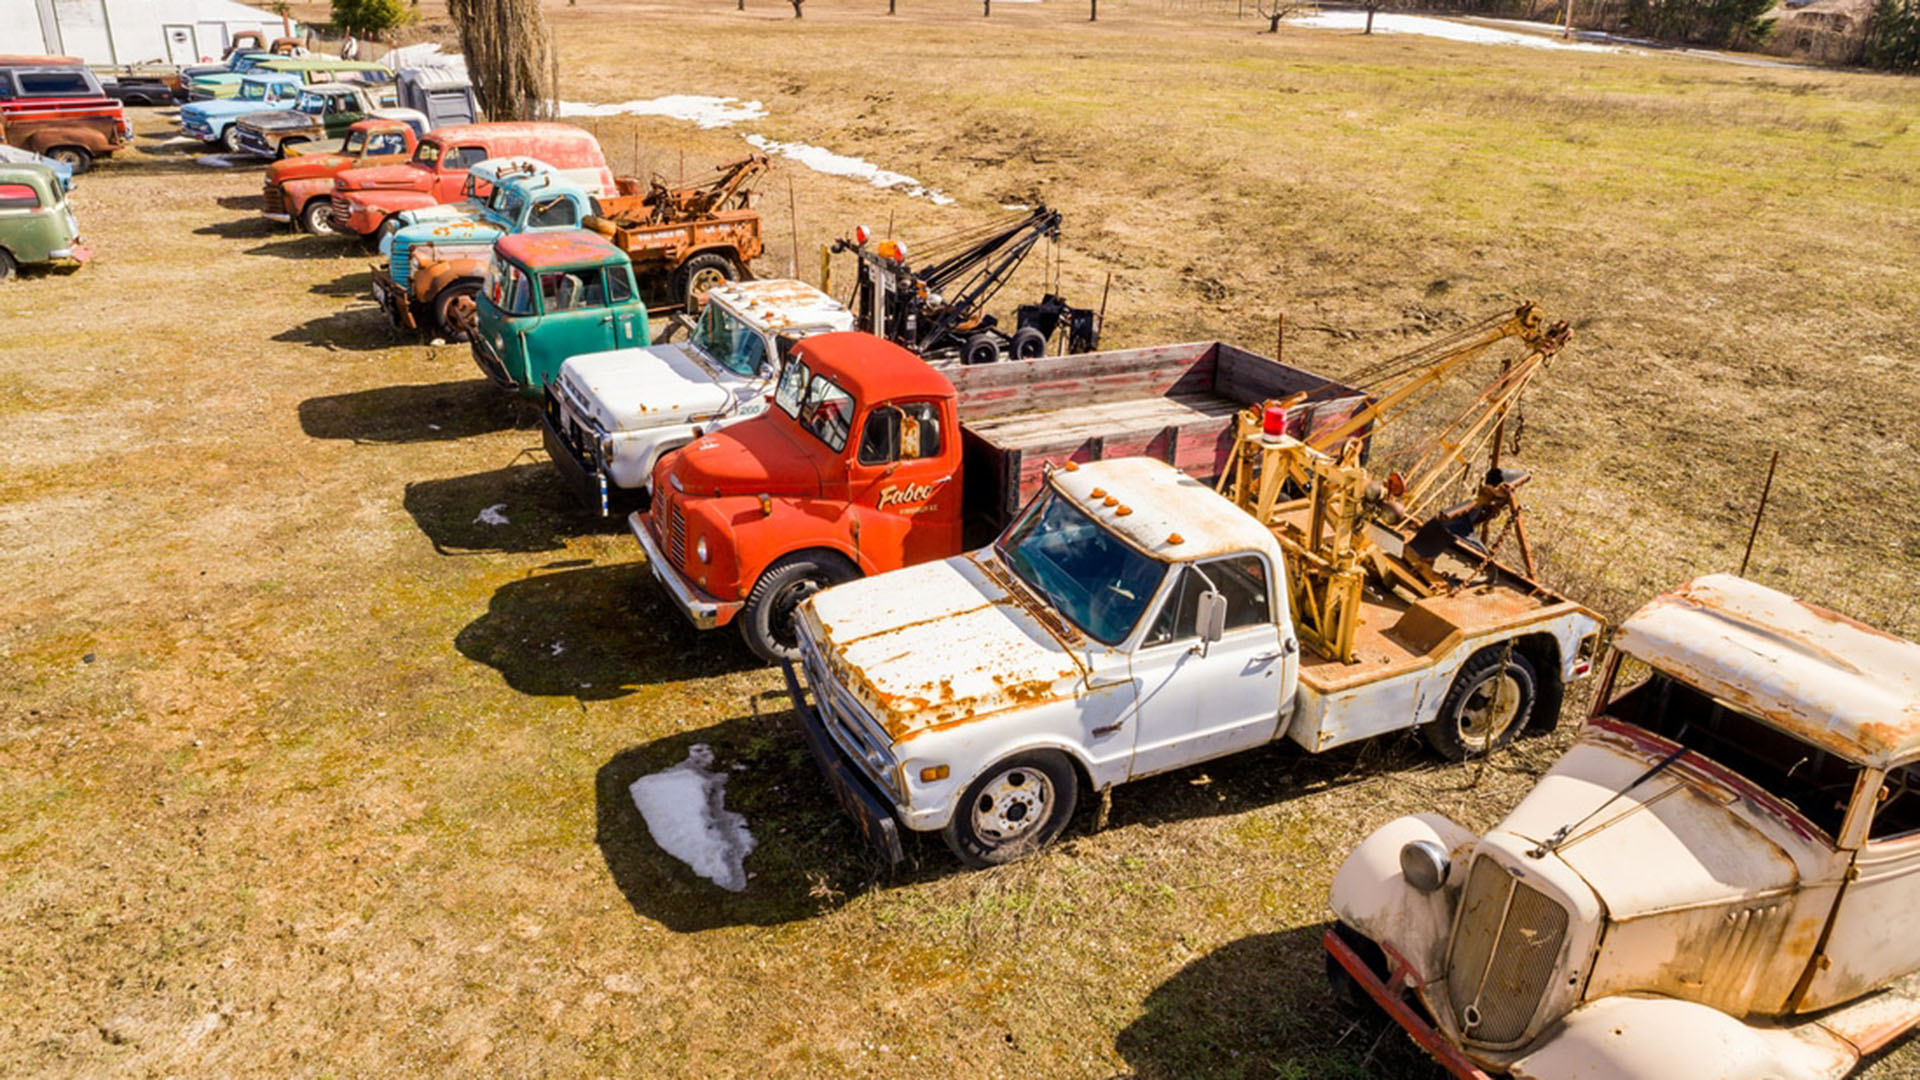 For Sale In Canada Five Acres 340 Vintage Cars